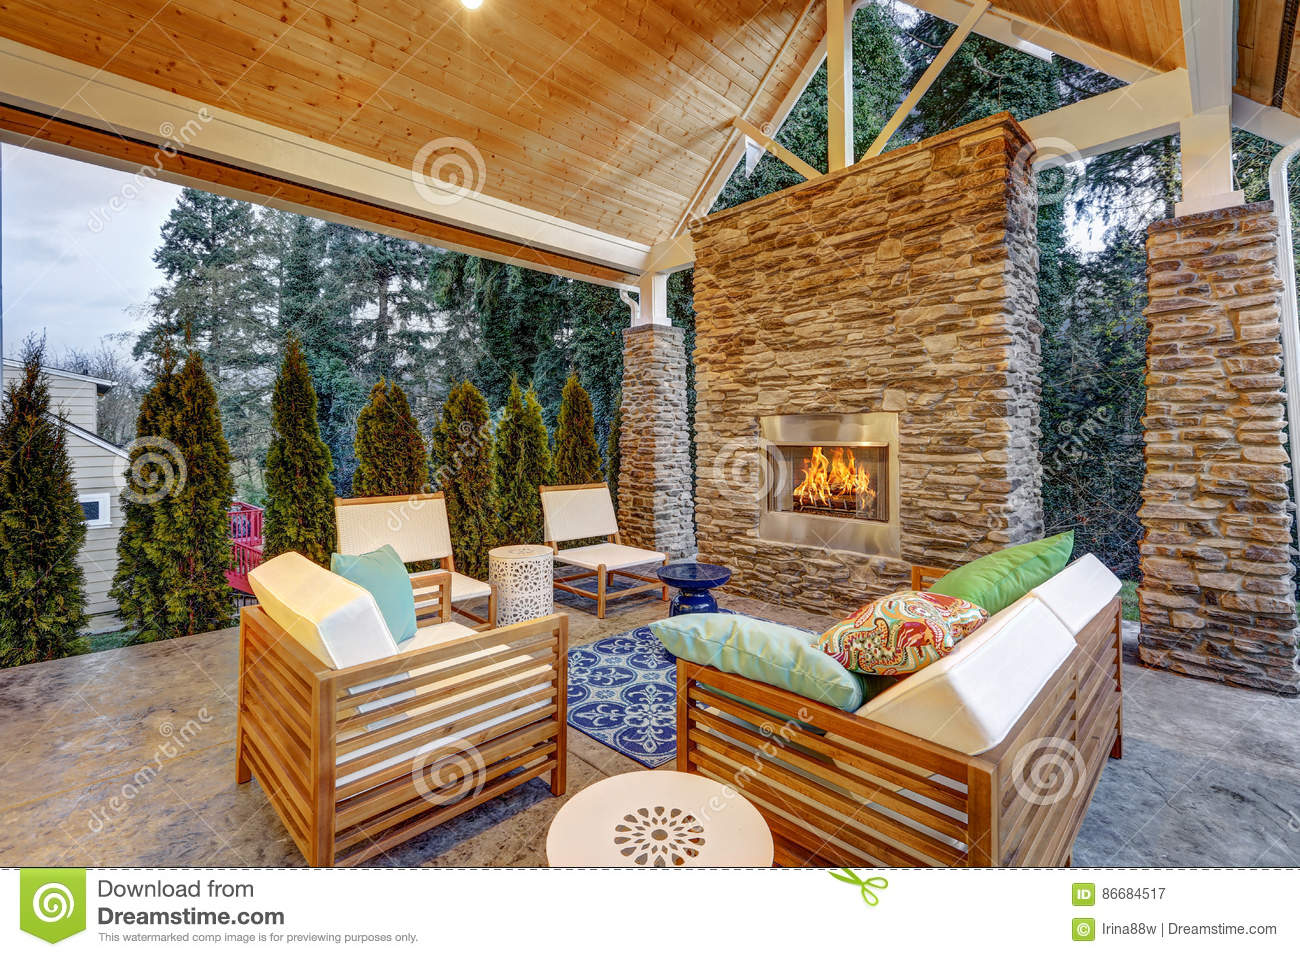 Chic Covered Back Patio With Built In Gas Fireplace Stock Image Image Of Rental Area 86684517